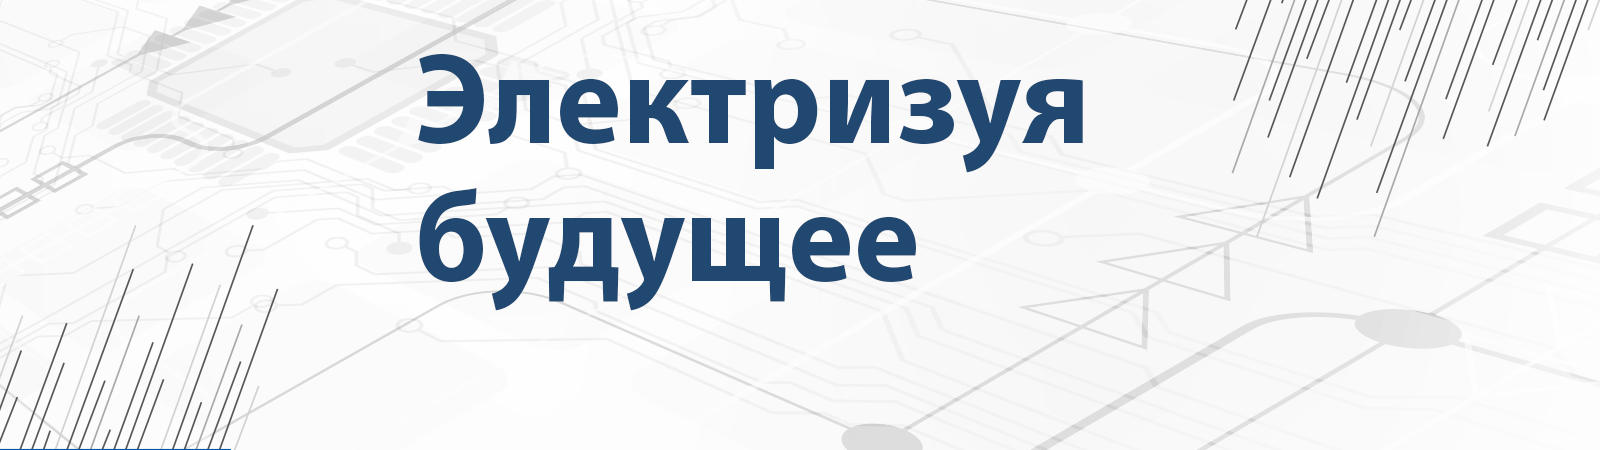 Acquisitions_Header_RU